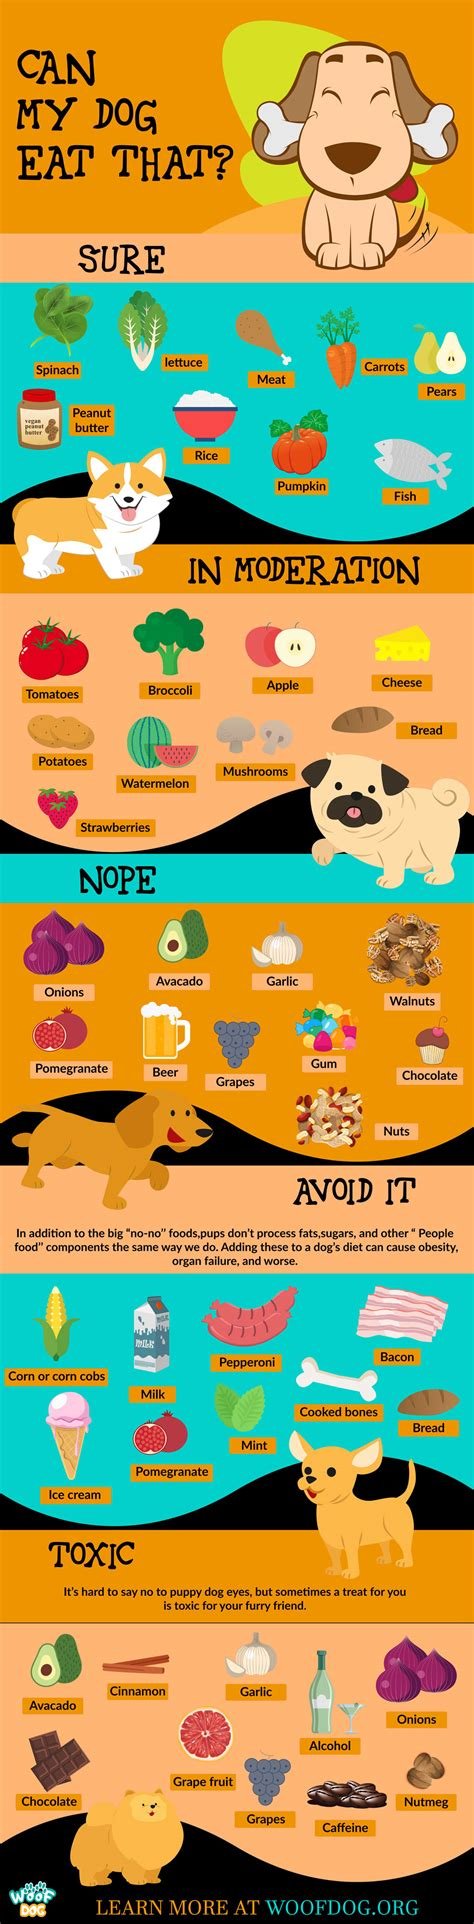 things dogs can t eat 30 human foods dogs can and can t eat 11 toxic and dangerous